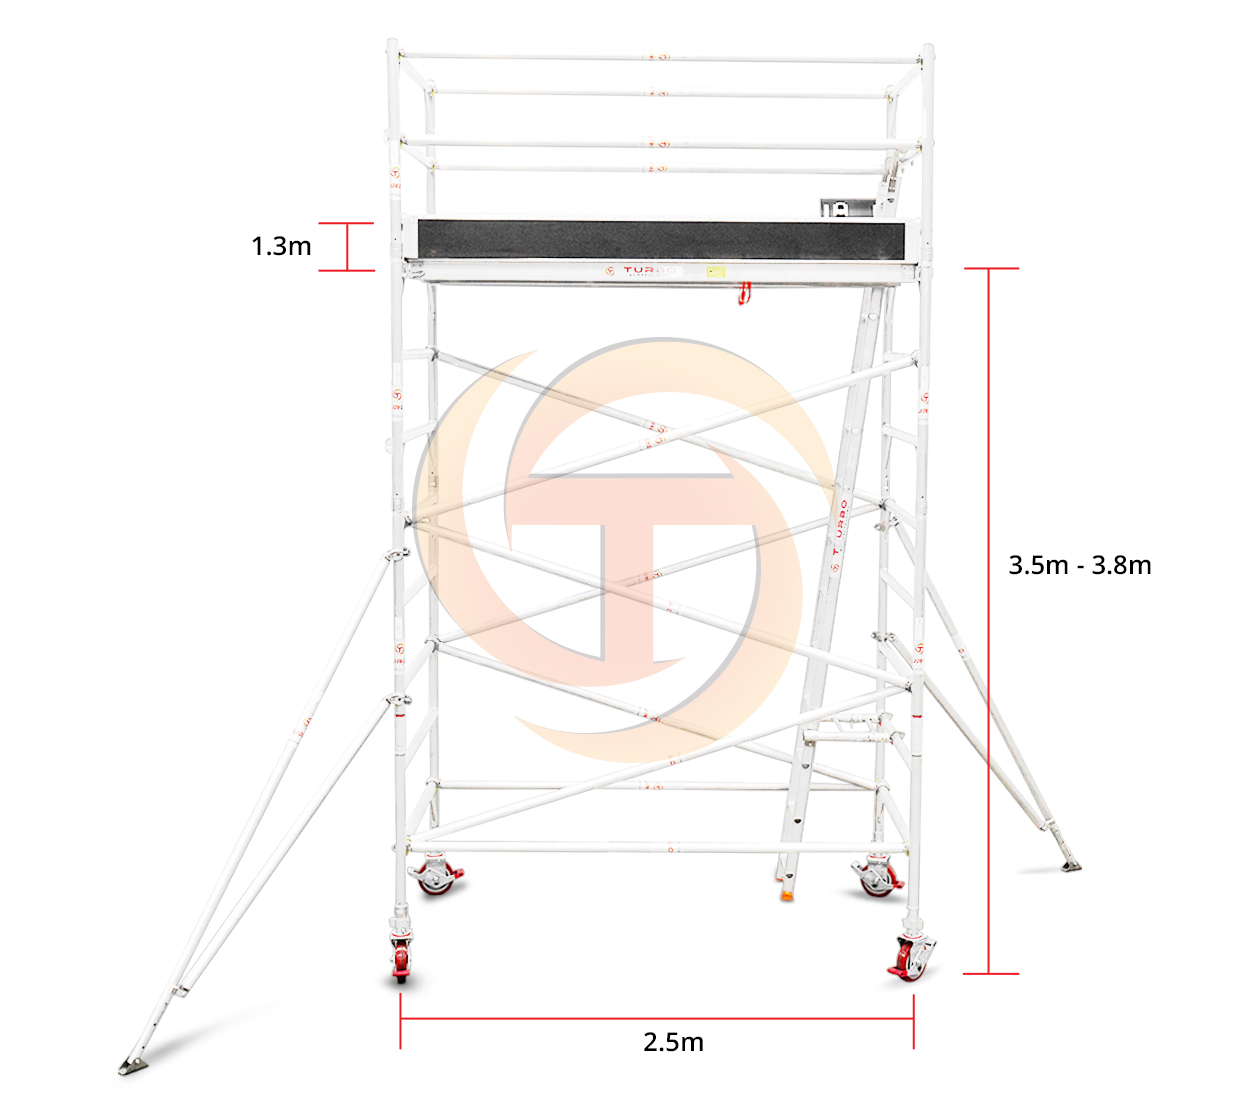 3.5m – 3.8m Wide Mobile Tower (Standing Height)